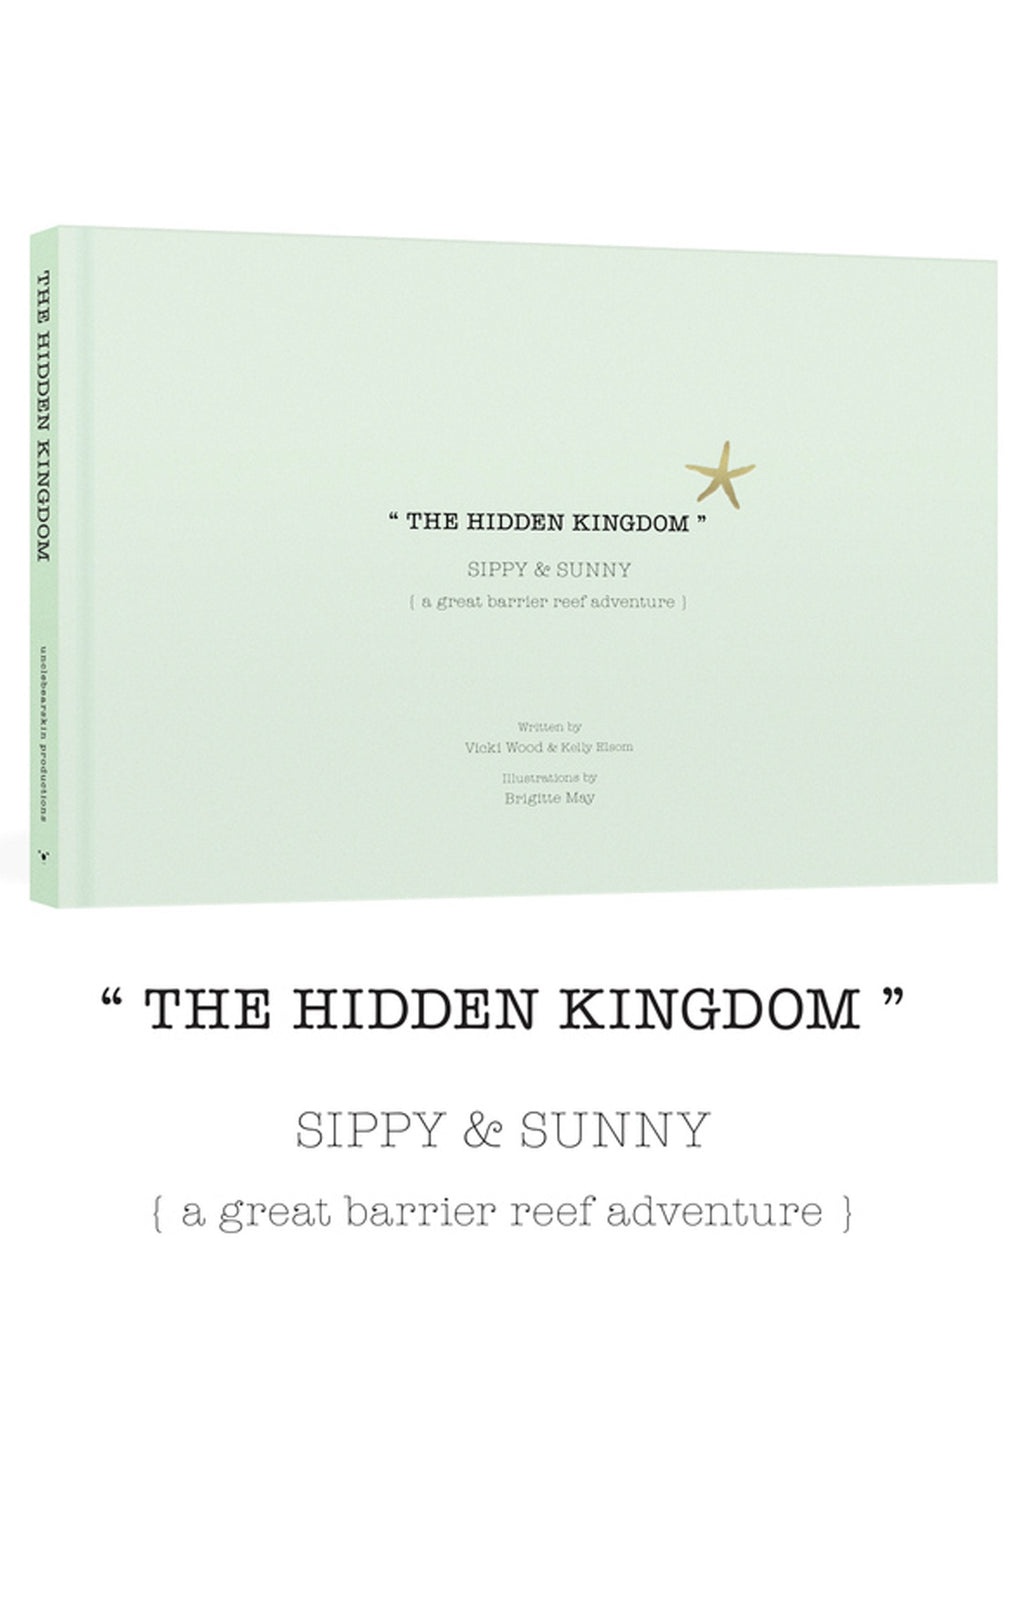 THE HIDDEN KINGDOM SIPPY & SUNNY {A GREAT BARRIER REEF ADVENTURE} BOOK